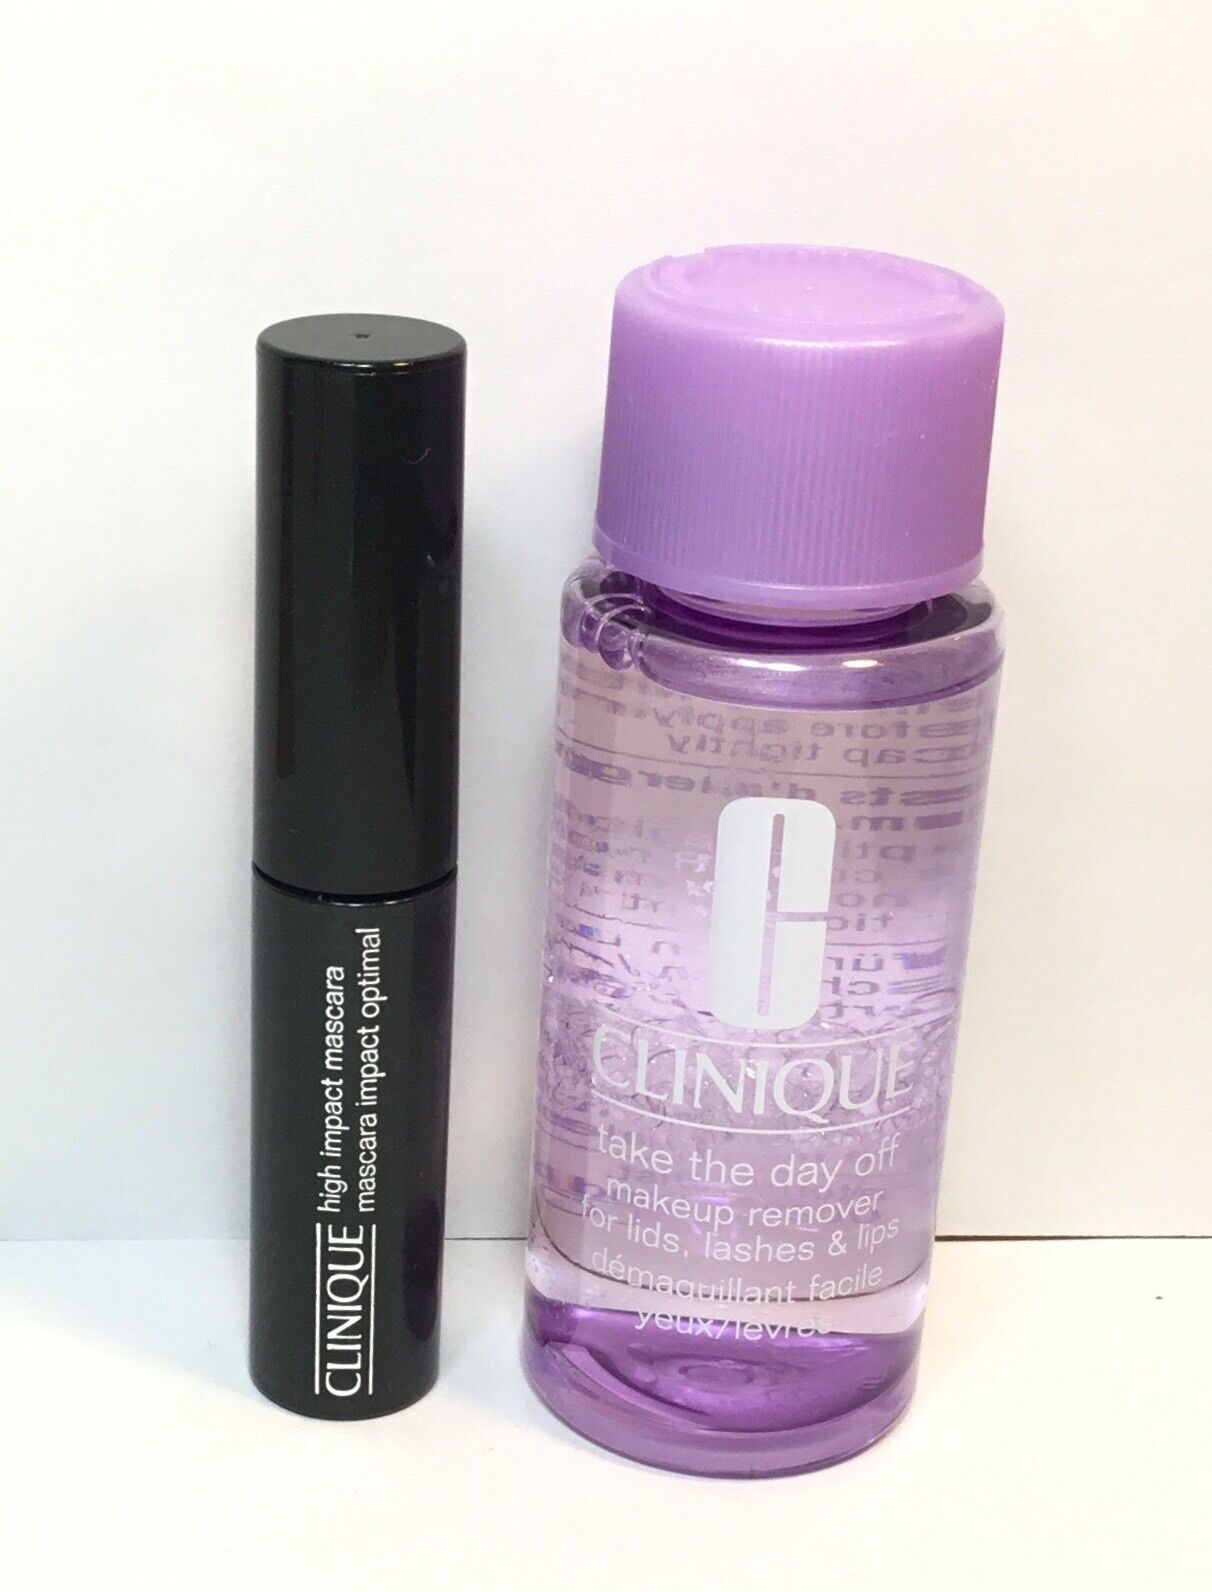 Clinique popular makeup travel size: take the day off makeup